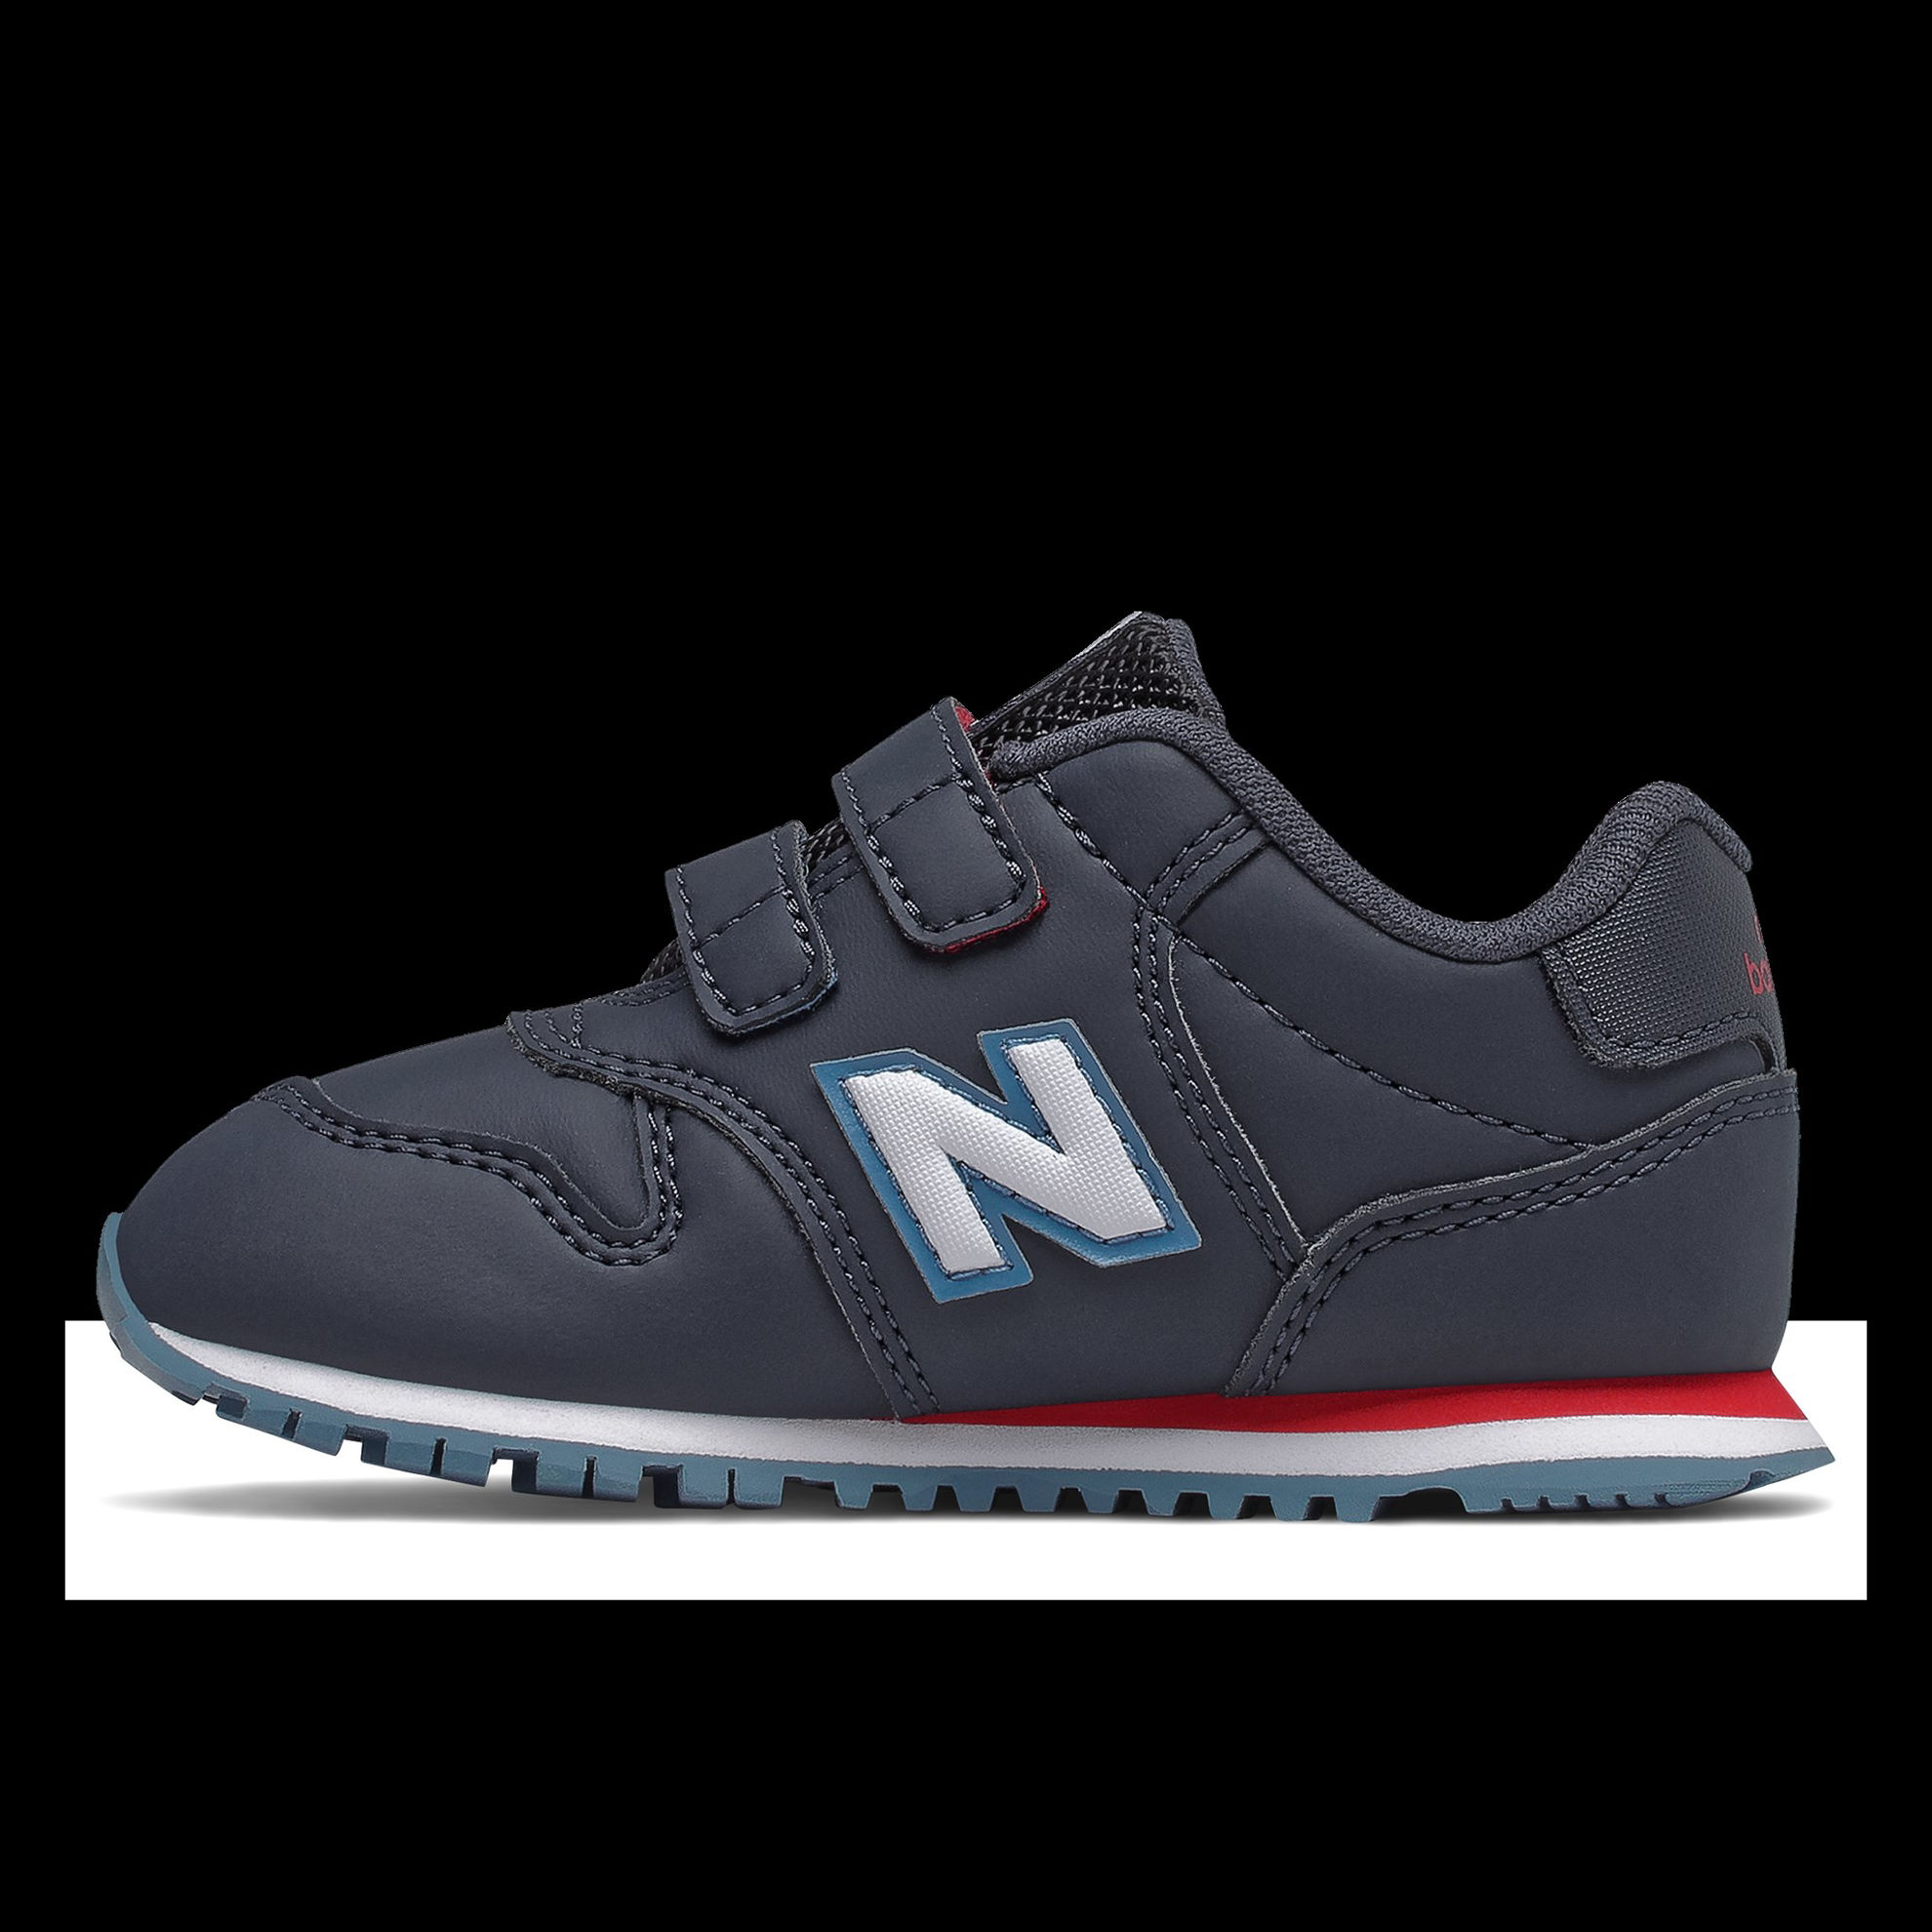 Immagine di SCARPA KIDS LIFESTYLE NAVY SYNTHETIC / TEXTILE